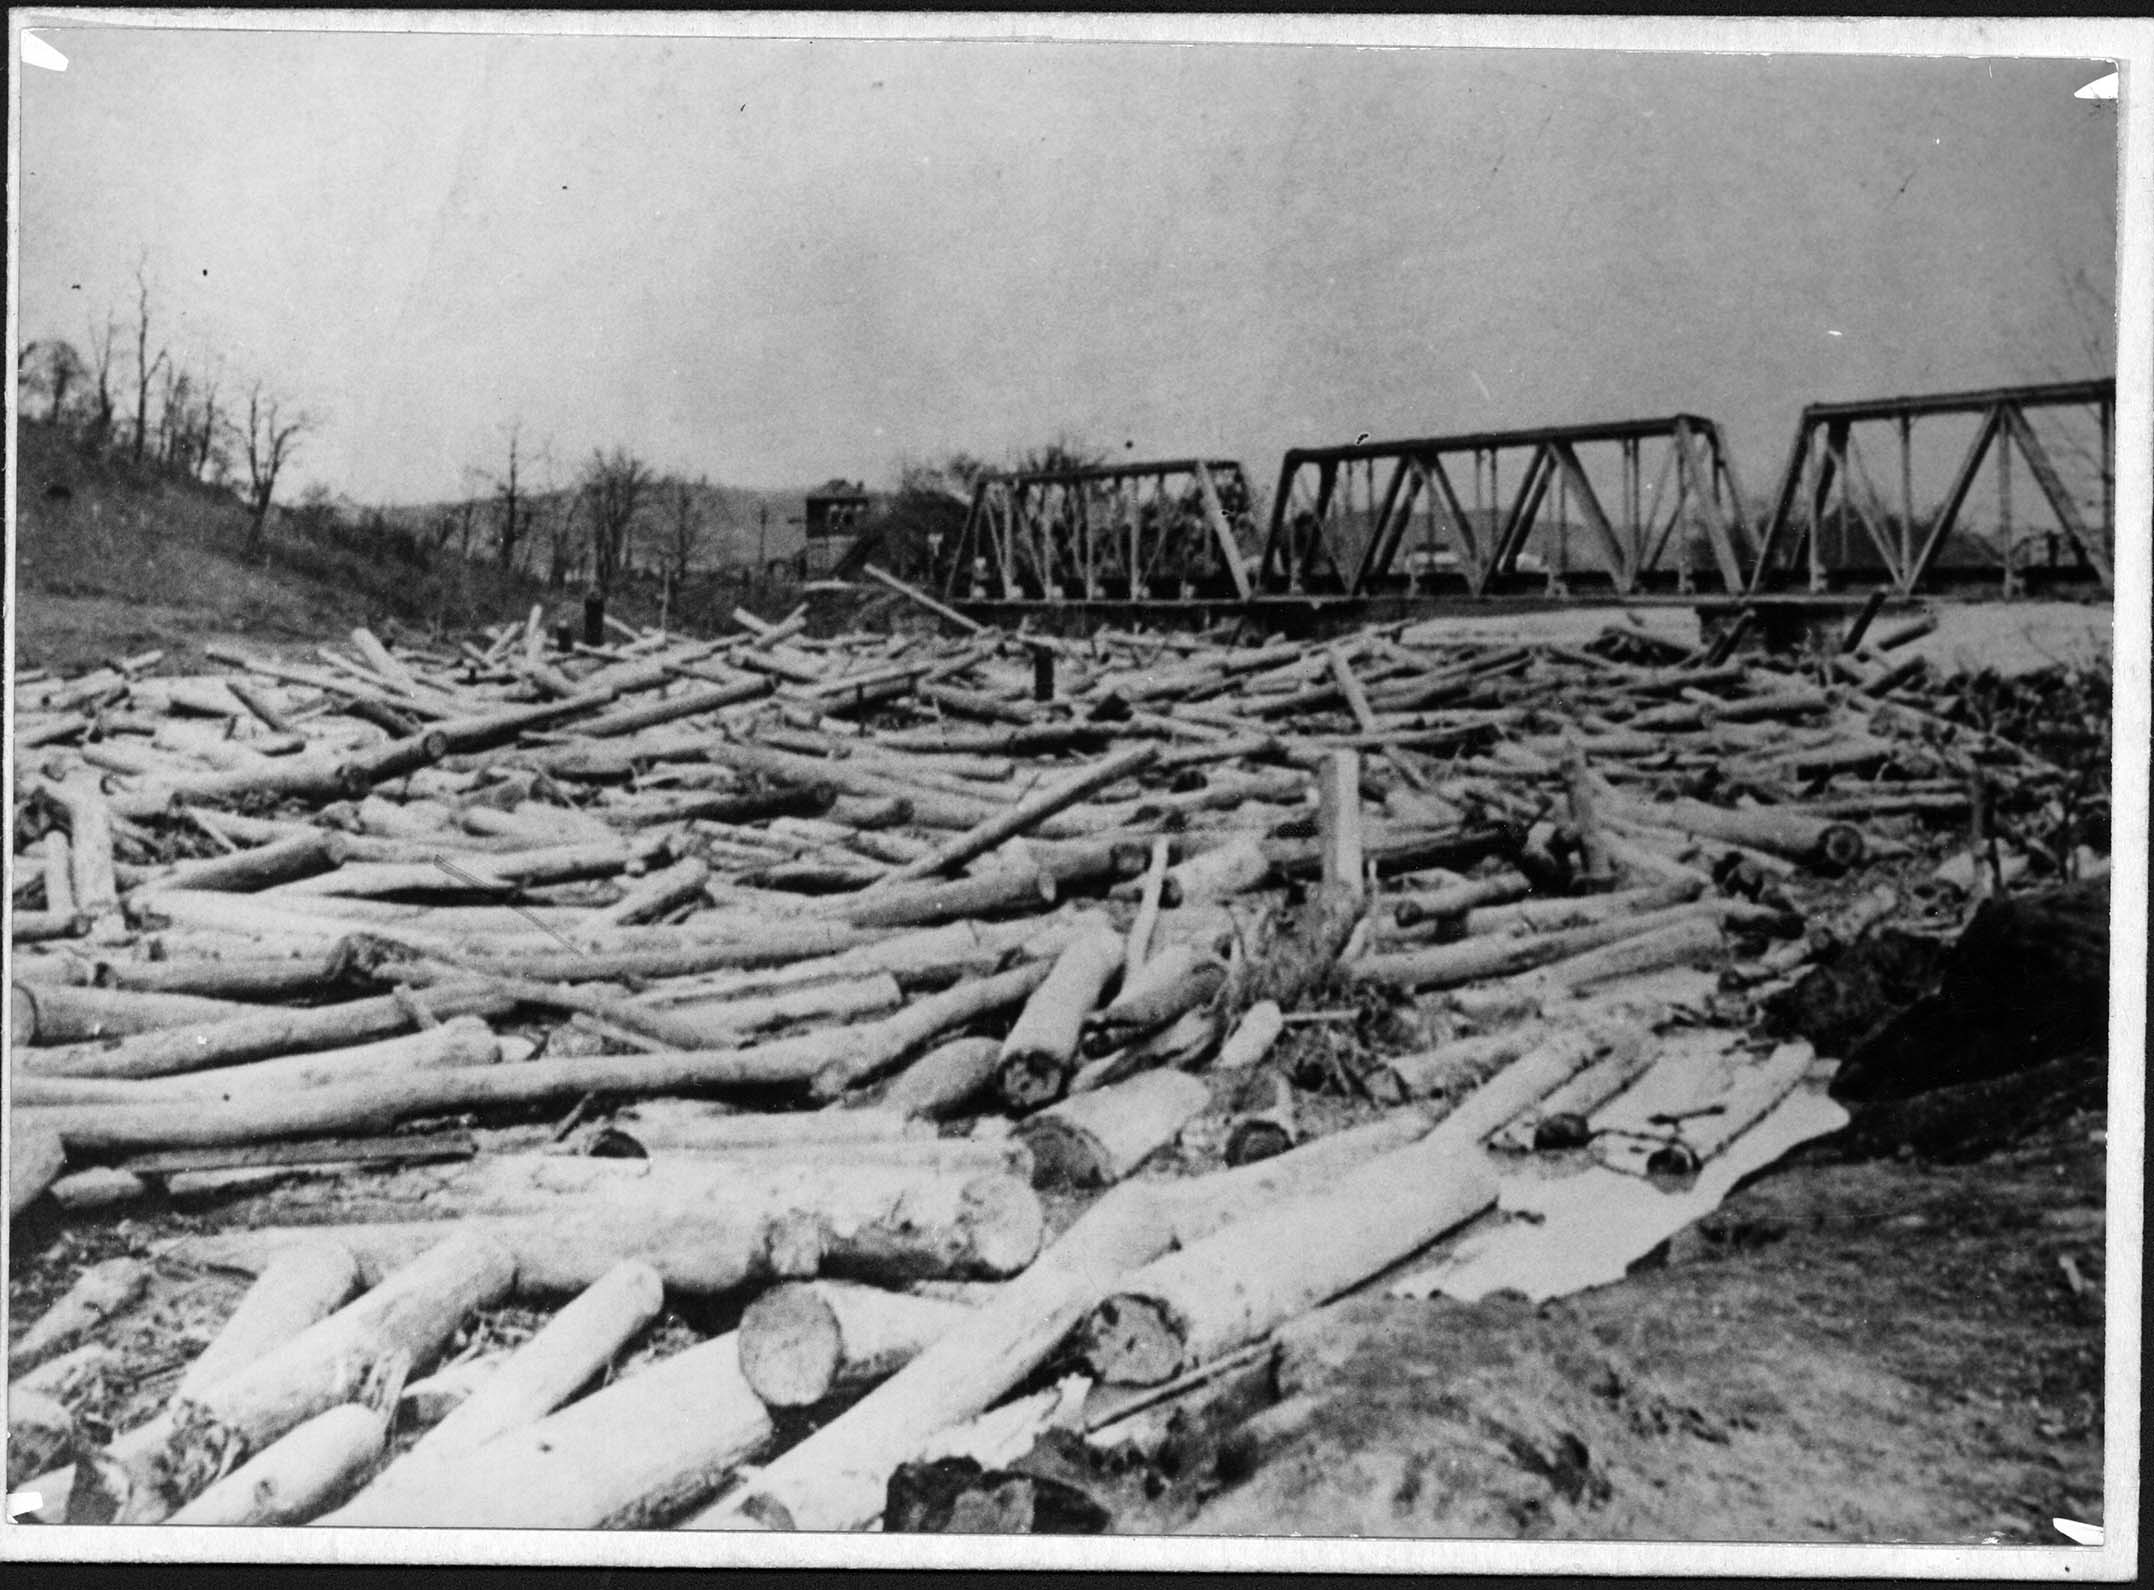 Floating logs jammed up against the bridge. Some claimed that the bridge had been weakened due to rising waters and the supports being rammed by logs. Image courtesy of Marshall University Special Collections.